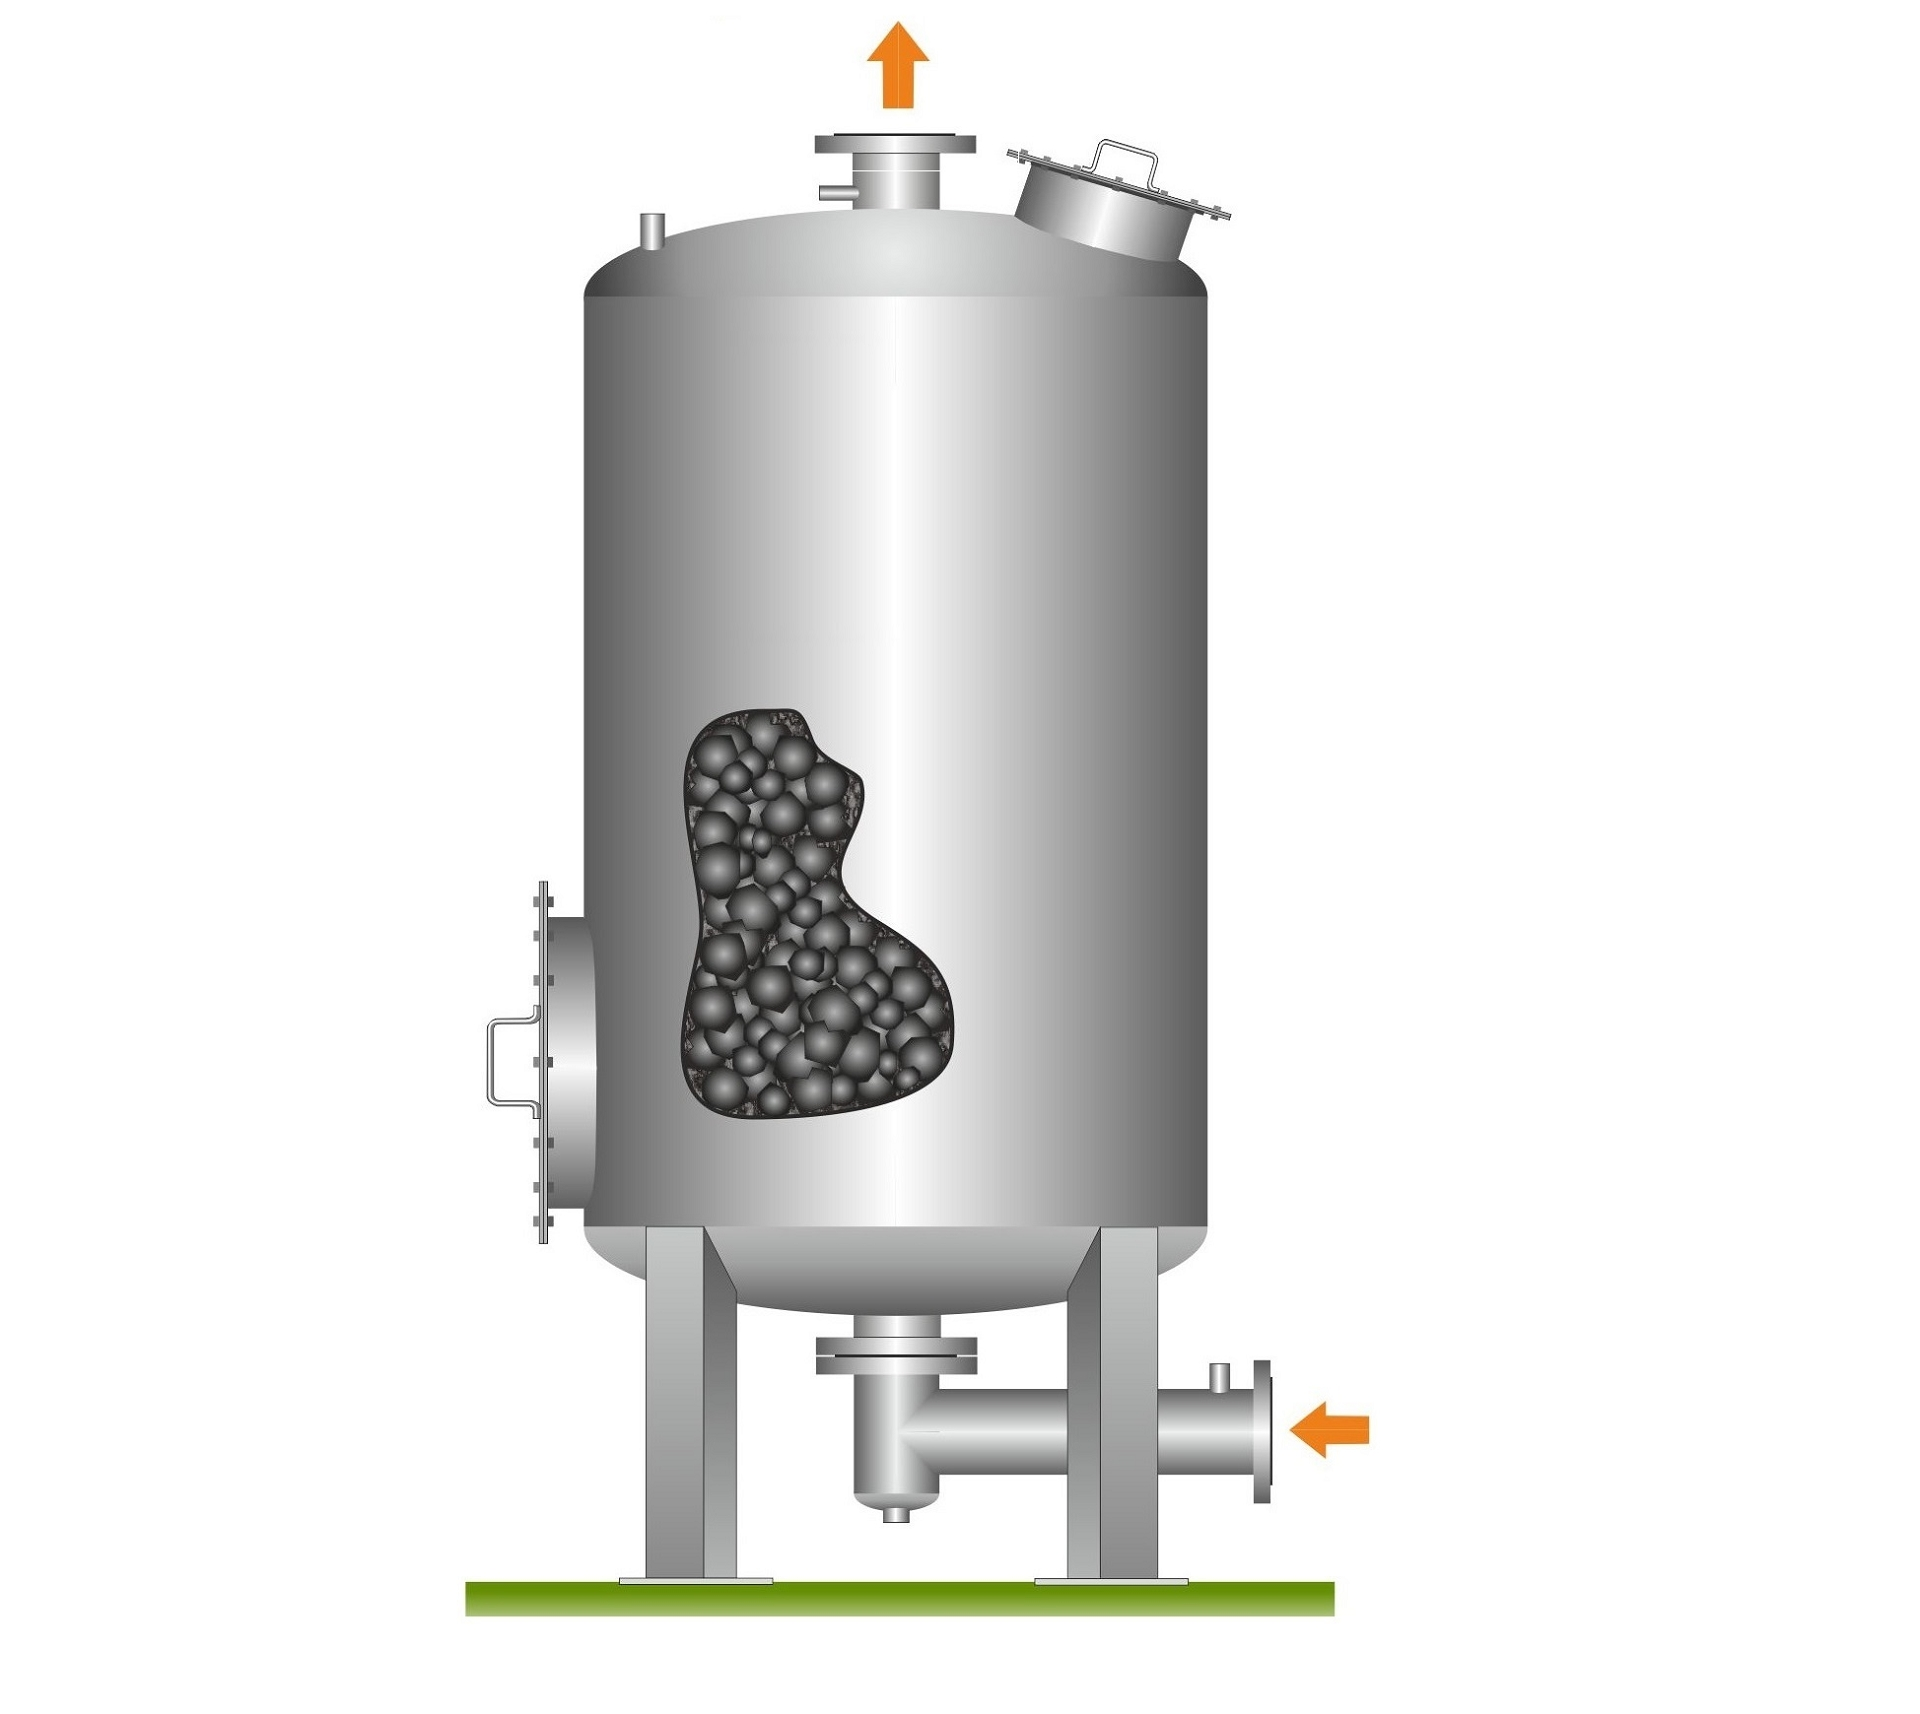 Survey: Impact Of Covid-19 On Activated Carbon Filter Market Insights 2020 Demand Growing Rapidly With Major Player- Tigg, Oxbow, Gongquan Water, Lenntech, Westech – The Daily Chronicle photo